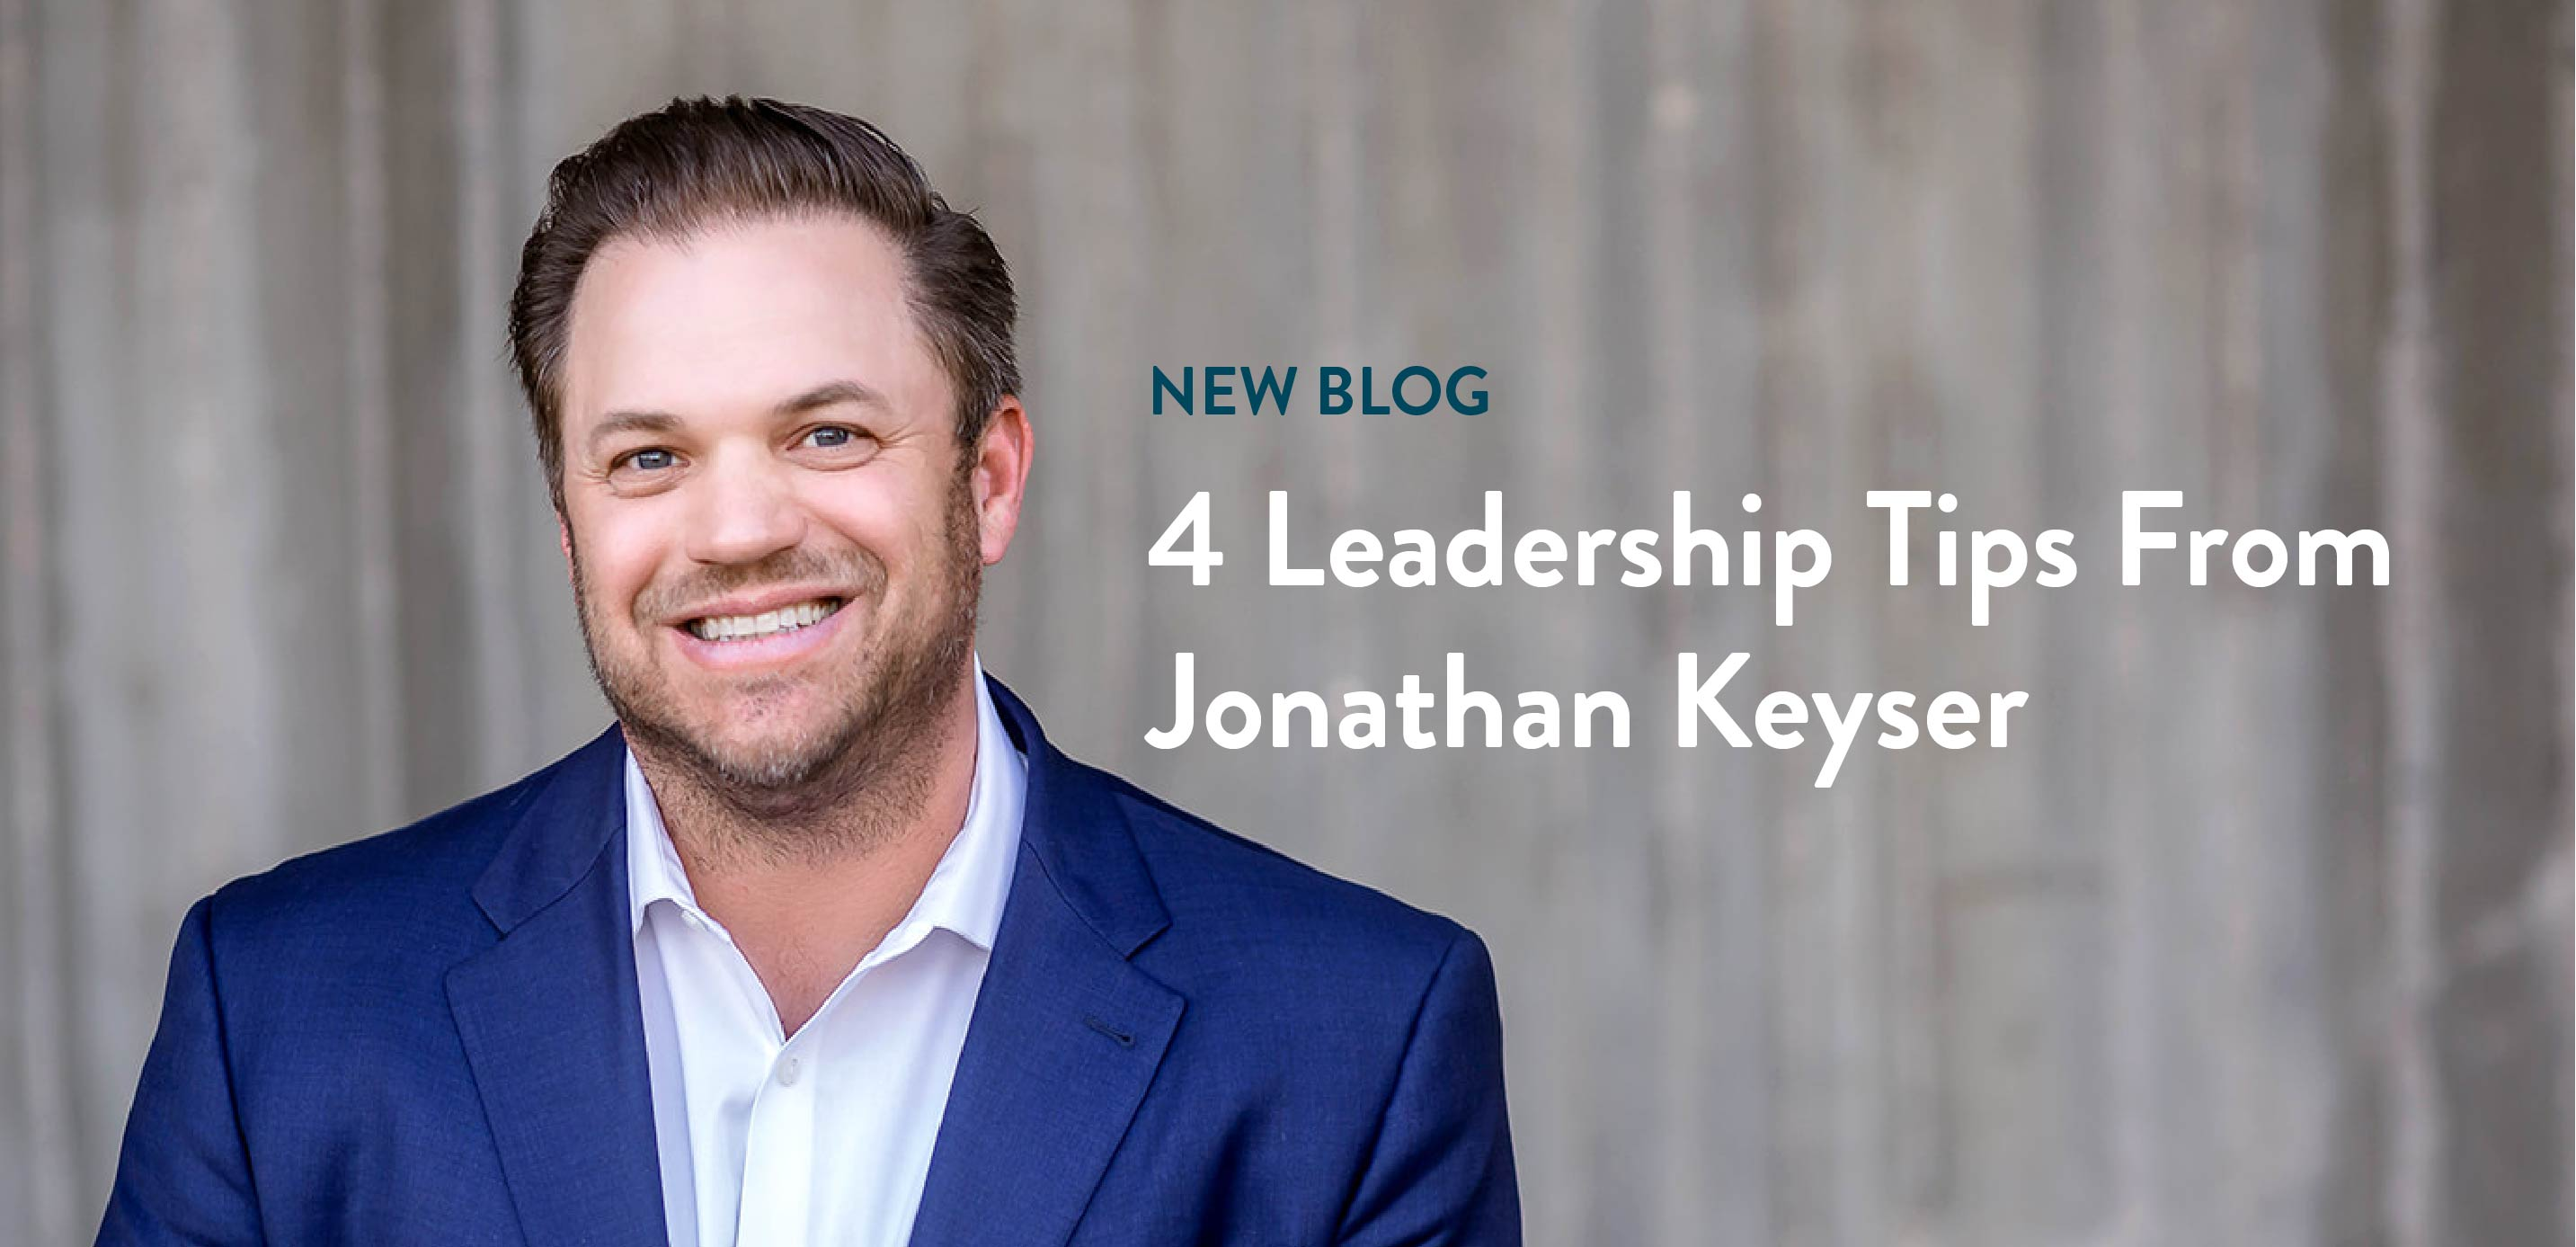 4 Leadership Tips from Jonathan Keyser